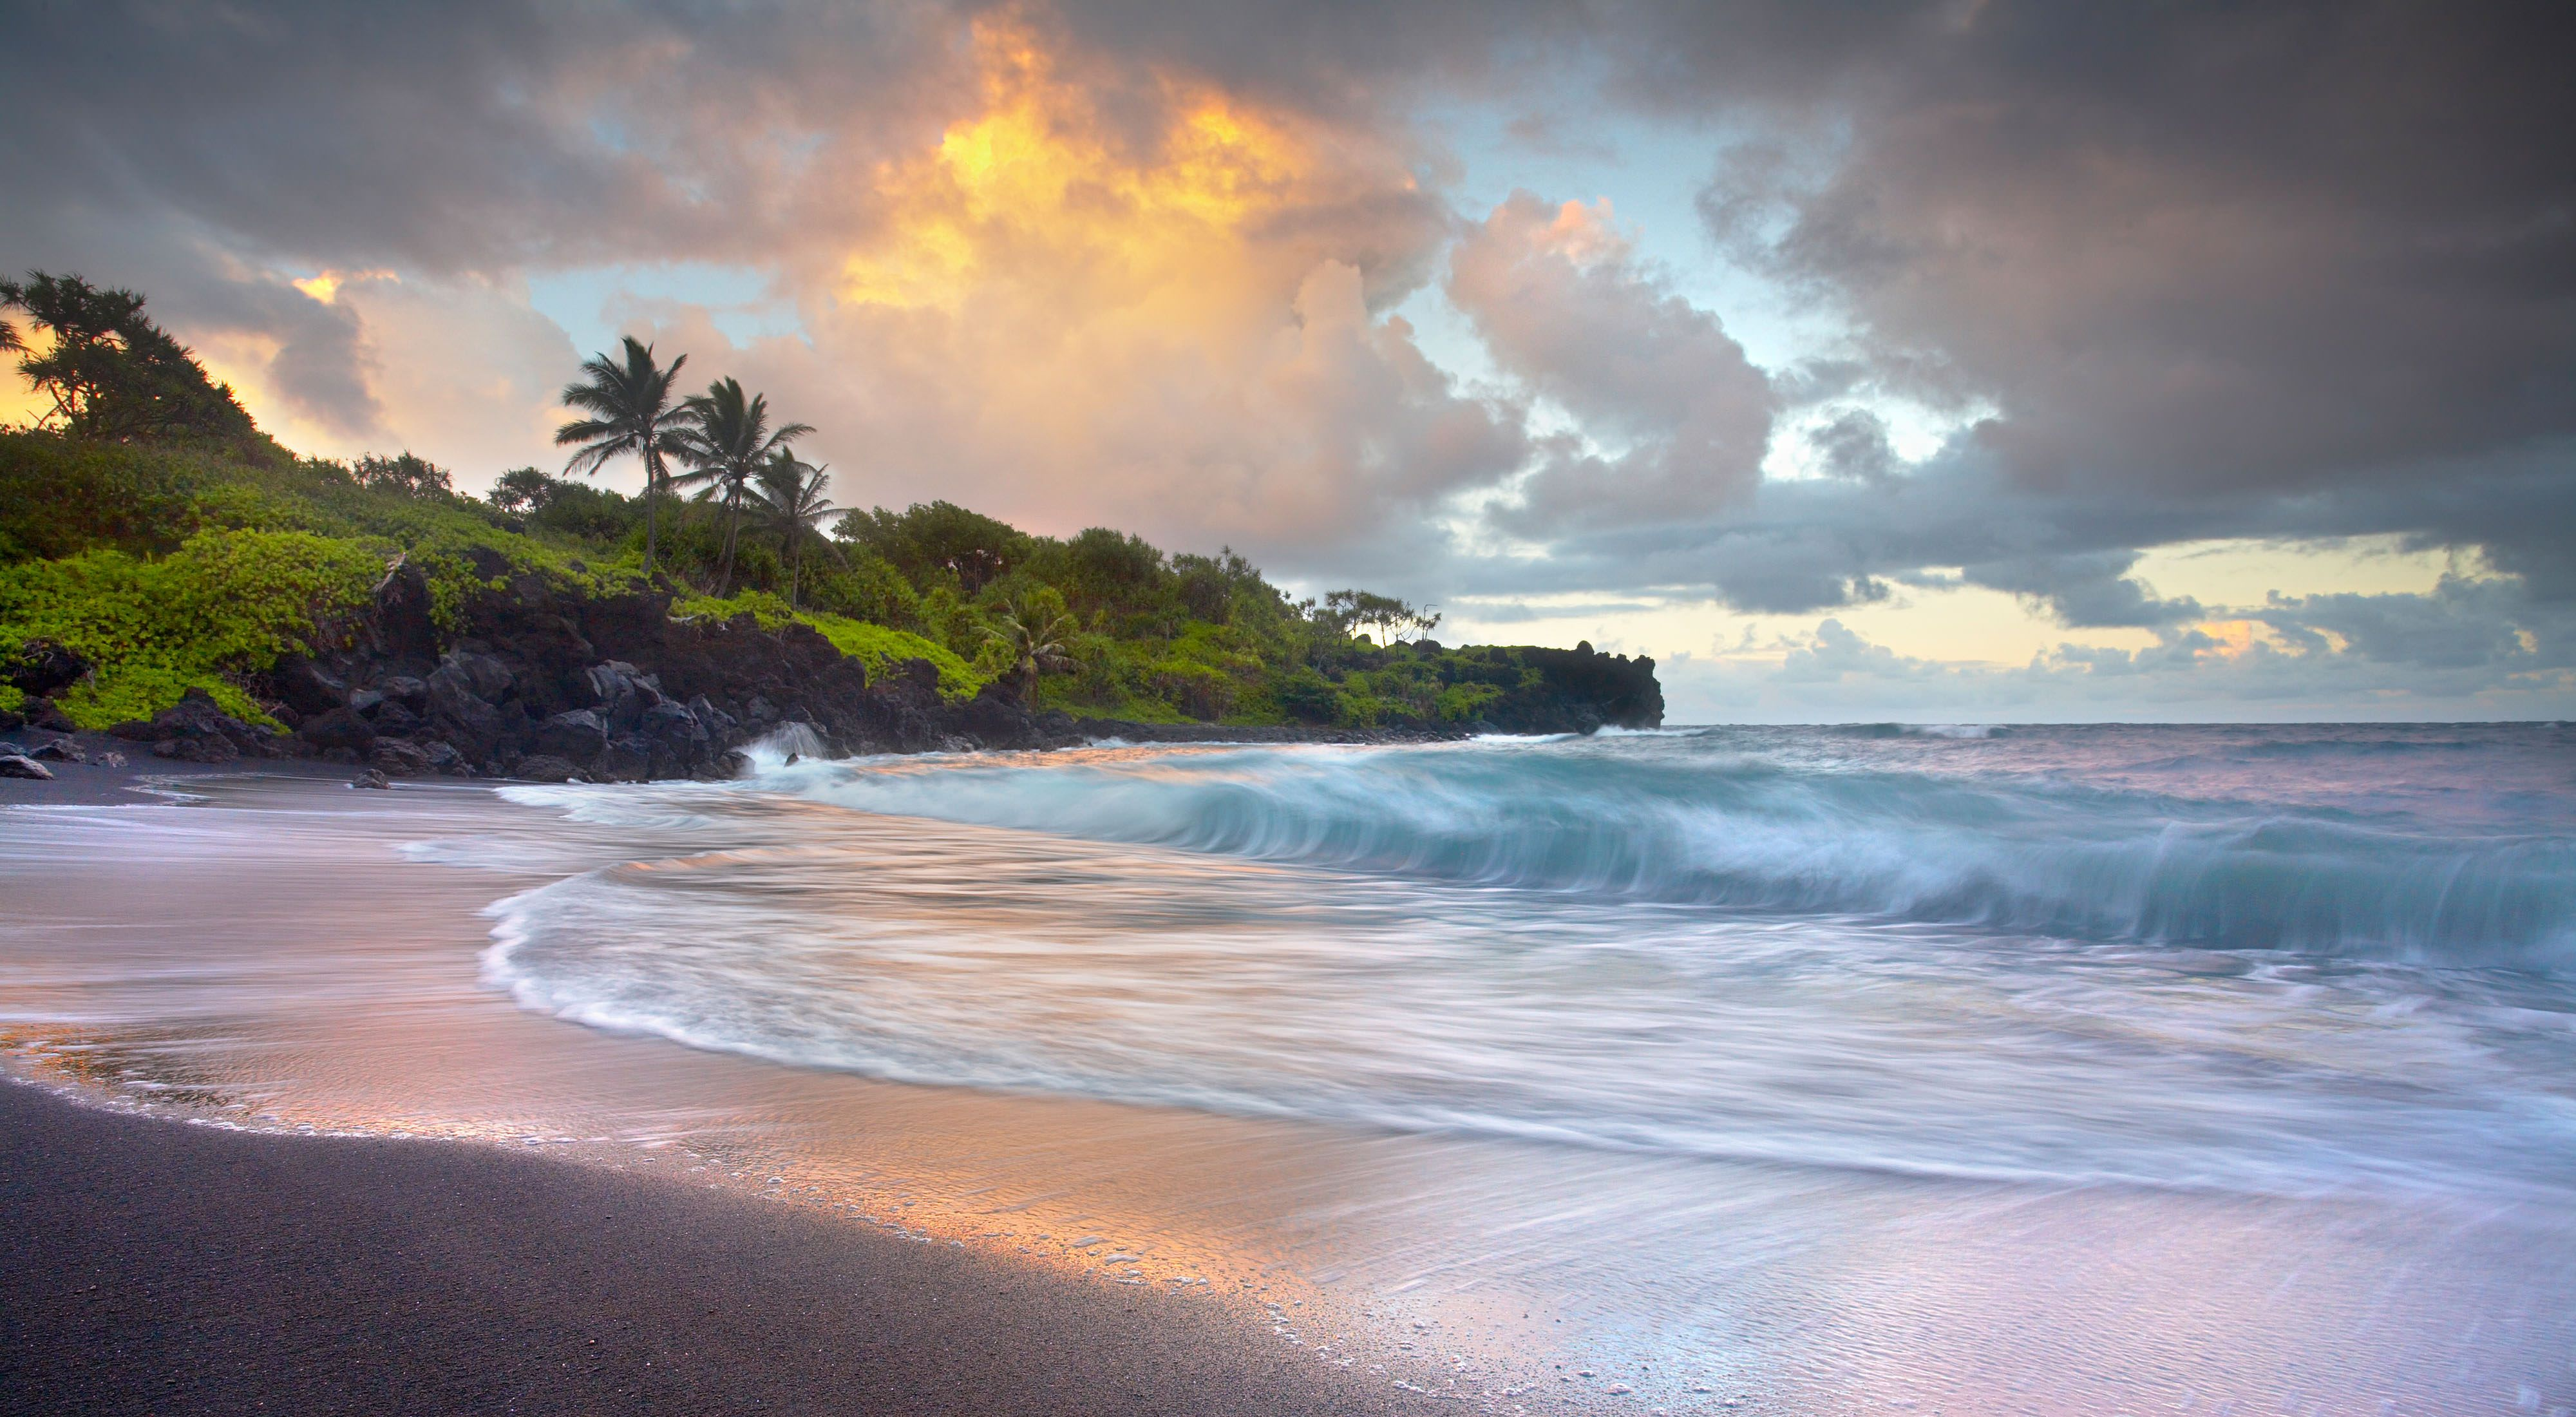 The black sand beach of Waianapanapa Sands near Hana, Maui in the Hawaiian islands.